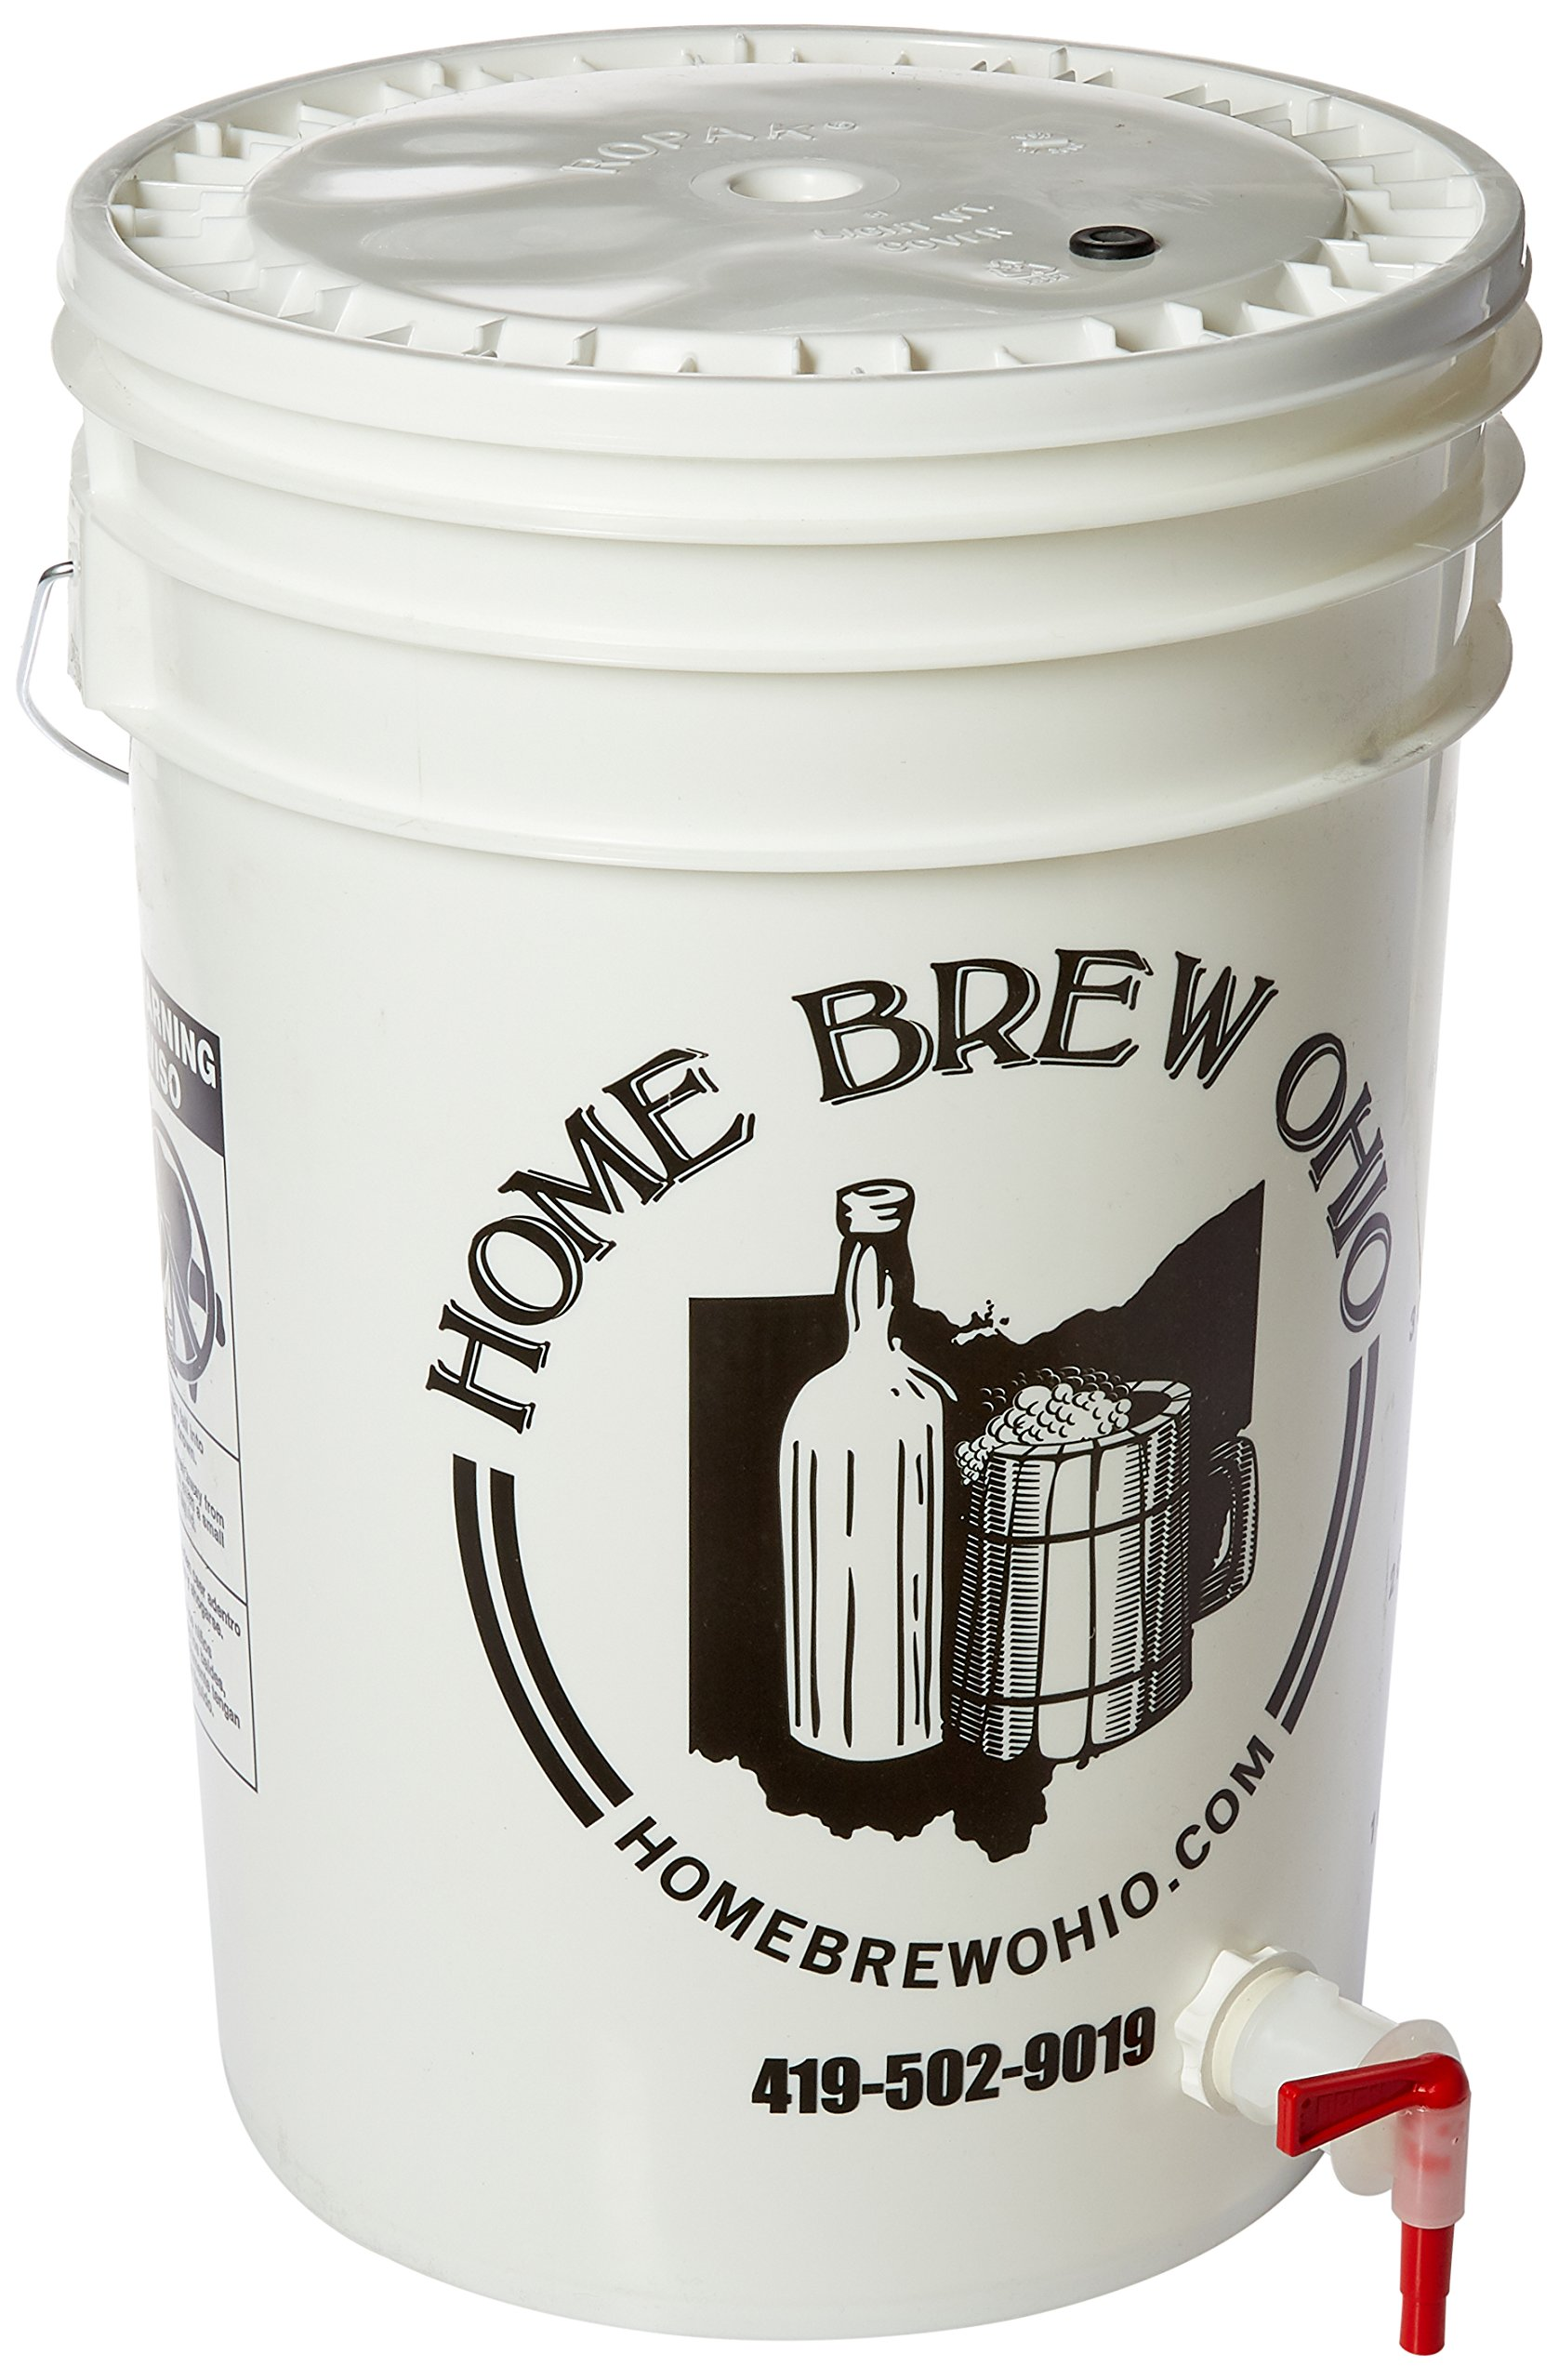 6.5 Gallon Bottling Bucket with Lid and Spigot for Bottling Beer by Chicago Brew Werks (Image #1)